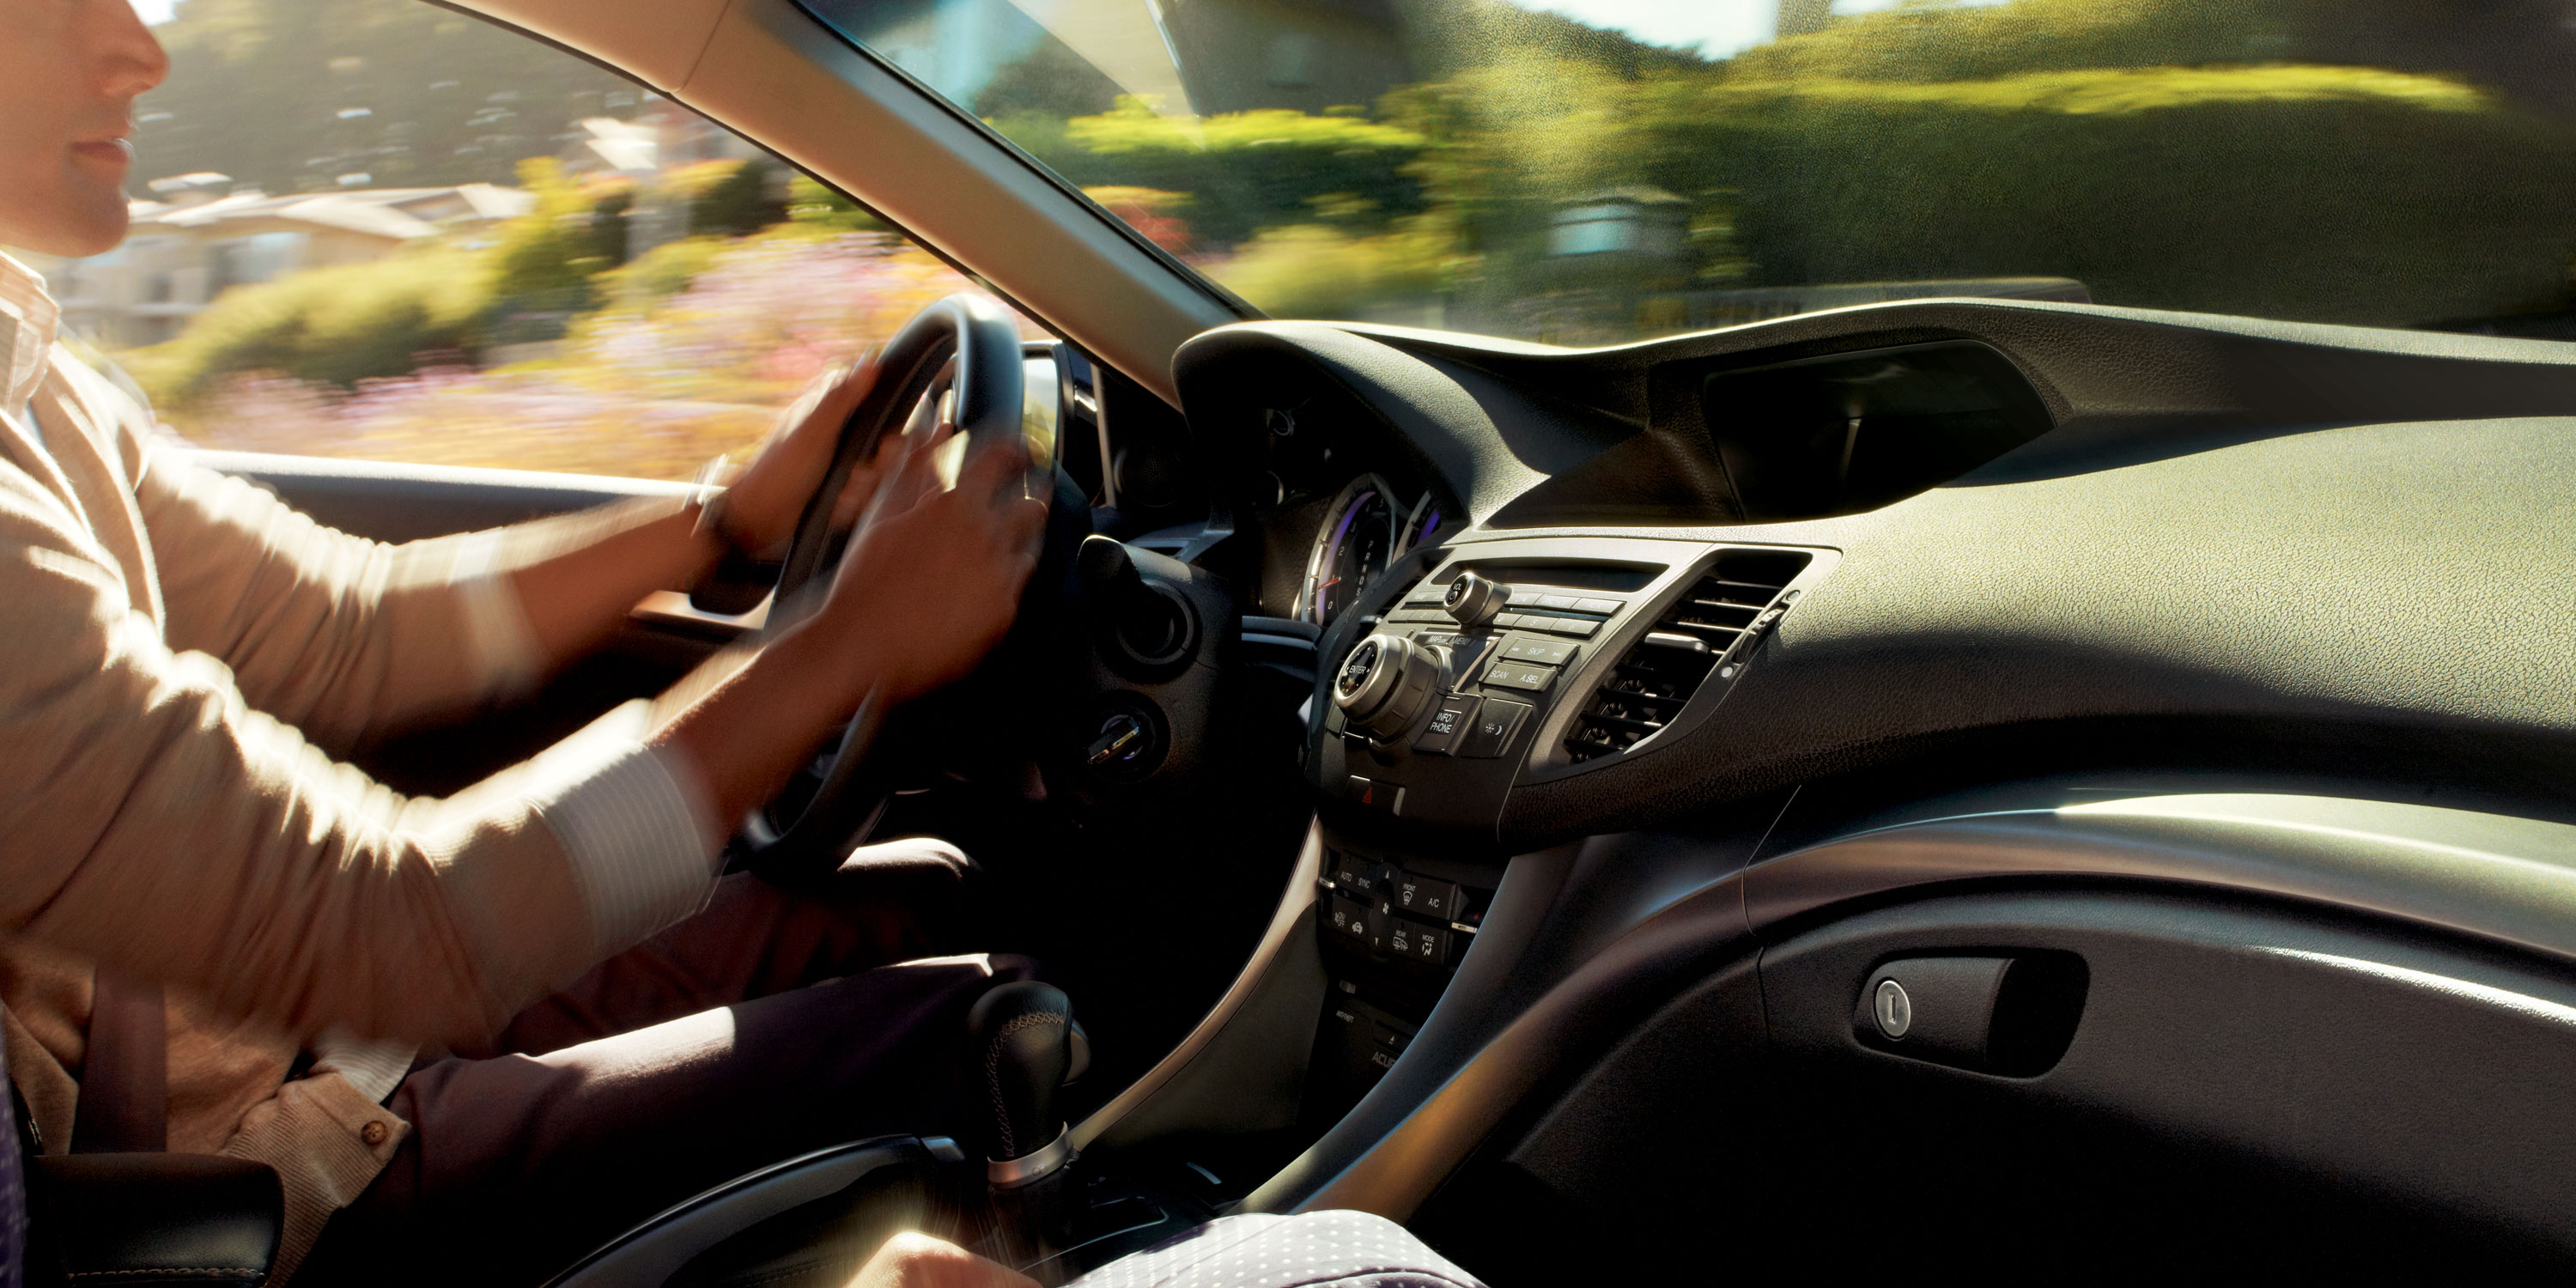 2014-Acura-TSX-Sport-Wagon-car-driver-man-driving-dashboard